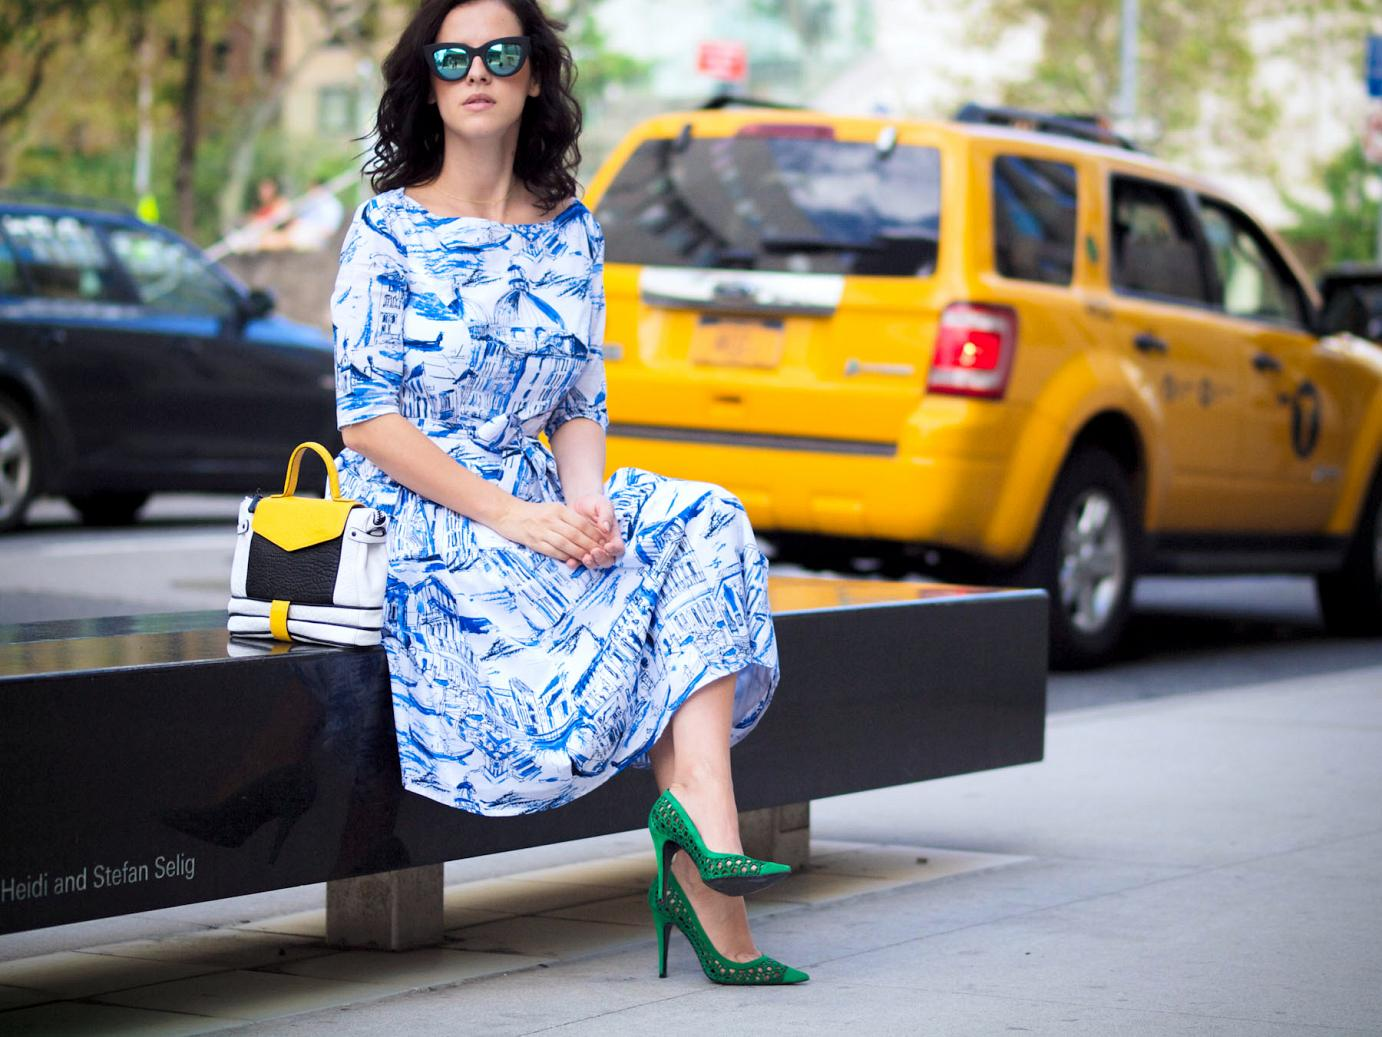 asos sunglasses, bittersweet colours, cooee jewelry, eye cat sunglasses, facine bag, green shoes, ink drawing print dress, lincoln Center nyfw, mirrored sunglasses, New York, nyfw september 2014, nyfw street style, pierre hardy shoes, printed dress,